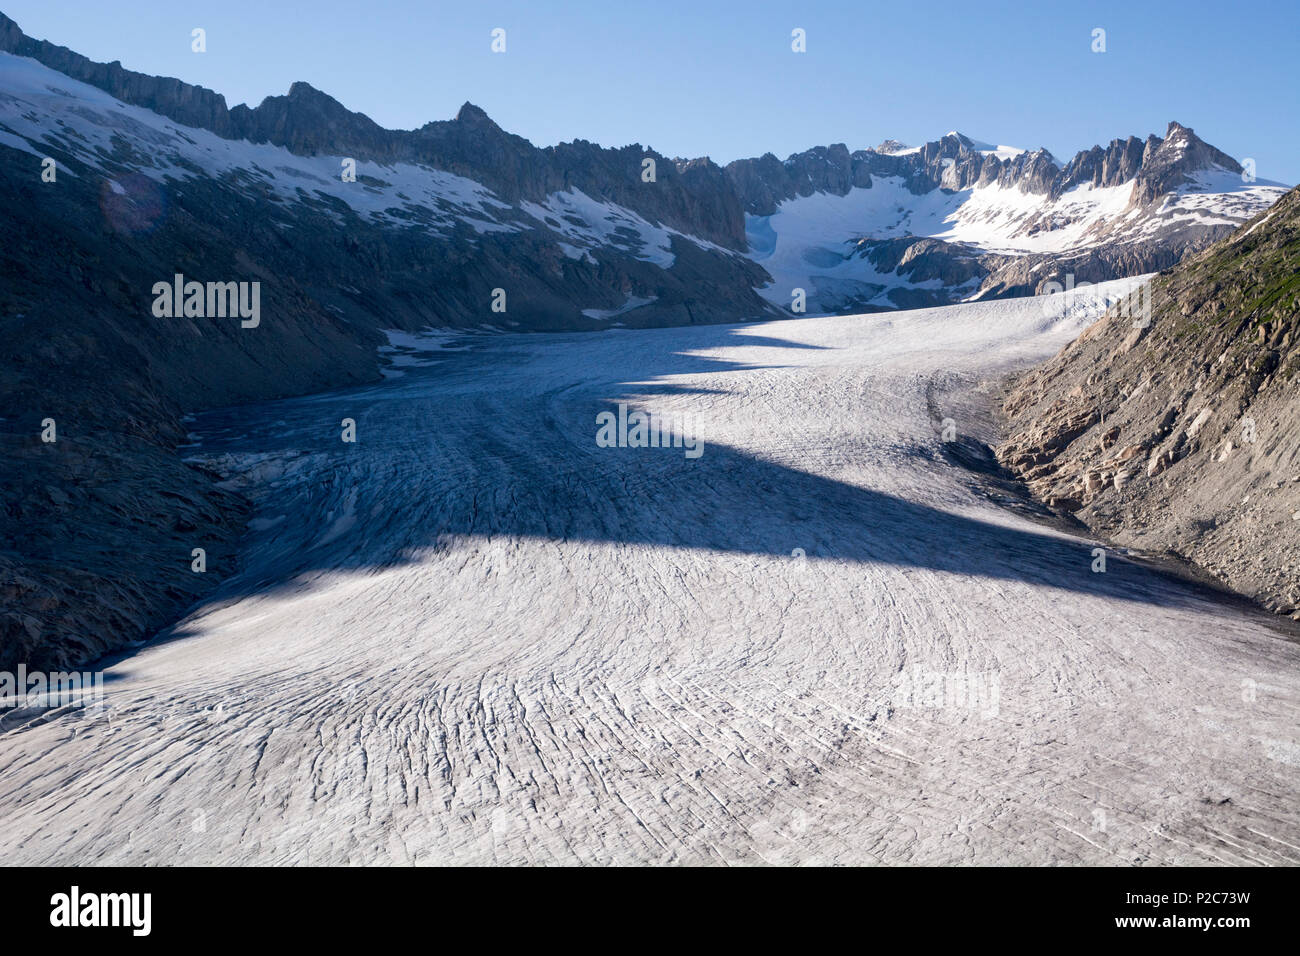 The tongue of the Rhone Glacier, source of the river Rhone, Uri Alps, canton of Valais, Switzerland Stock Photo